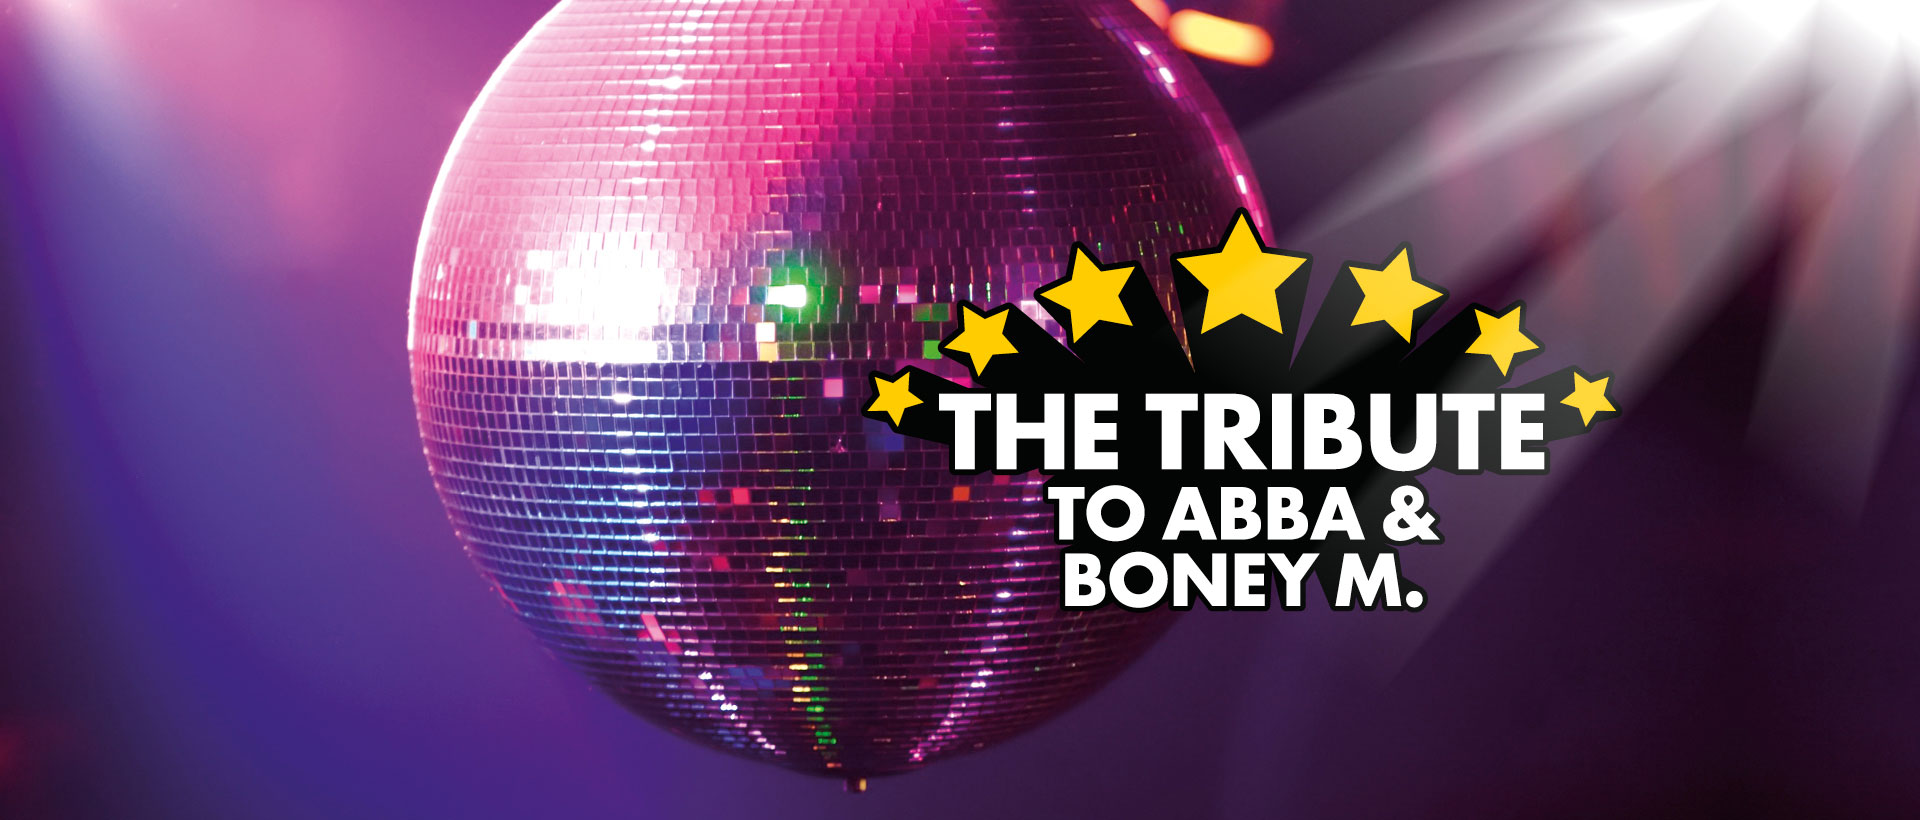 The_Tribute_to_ABBA_und_Boney_M.